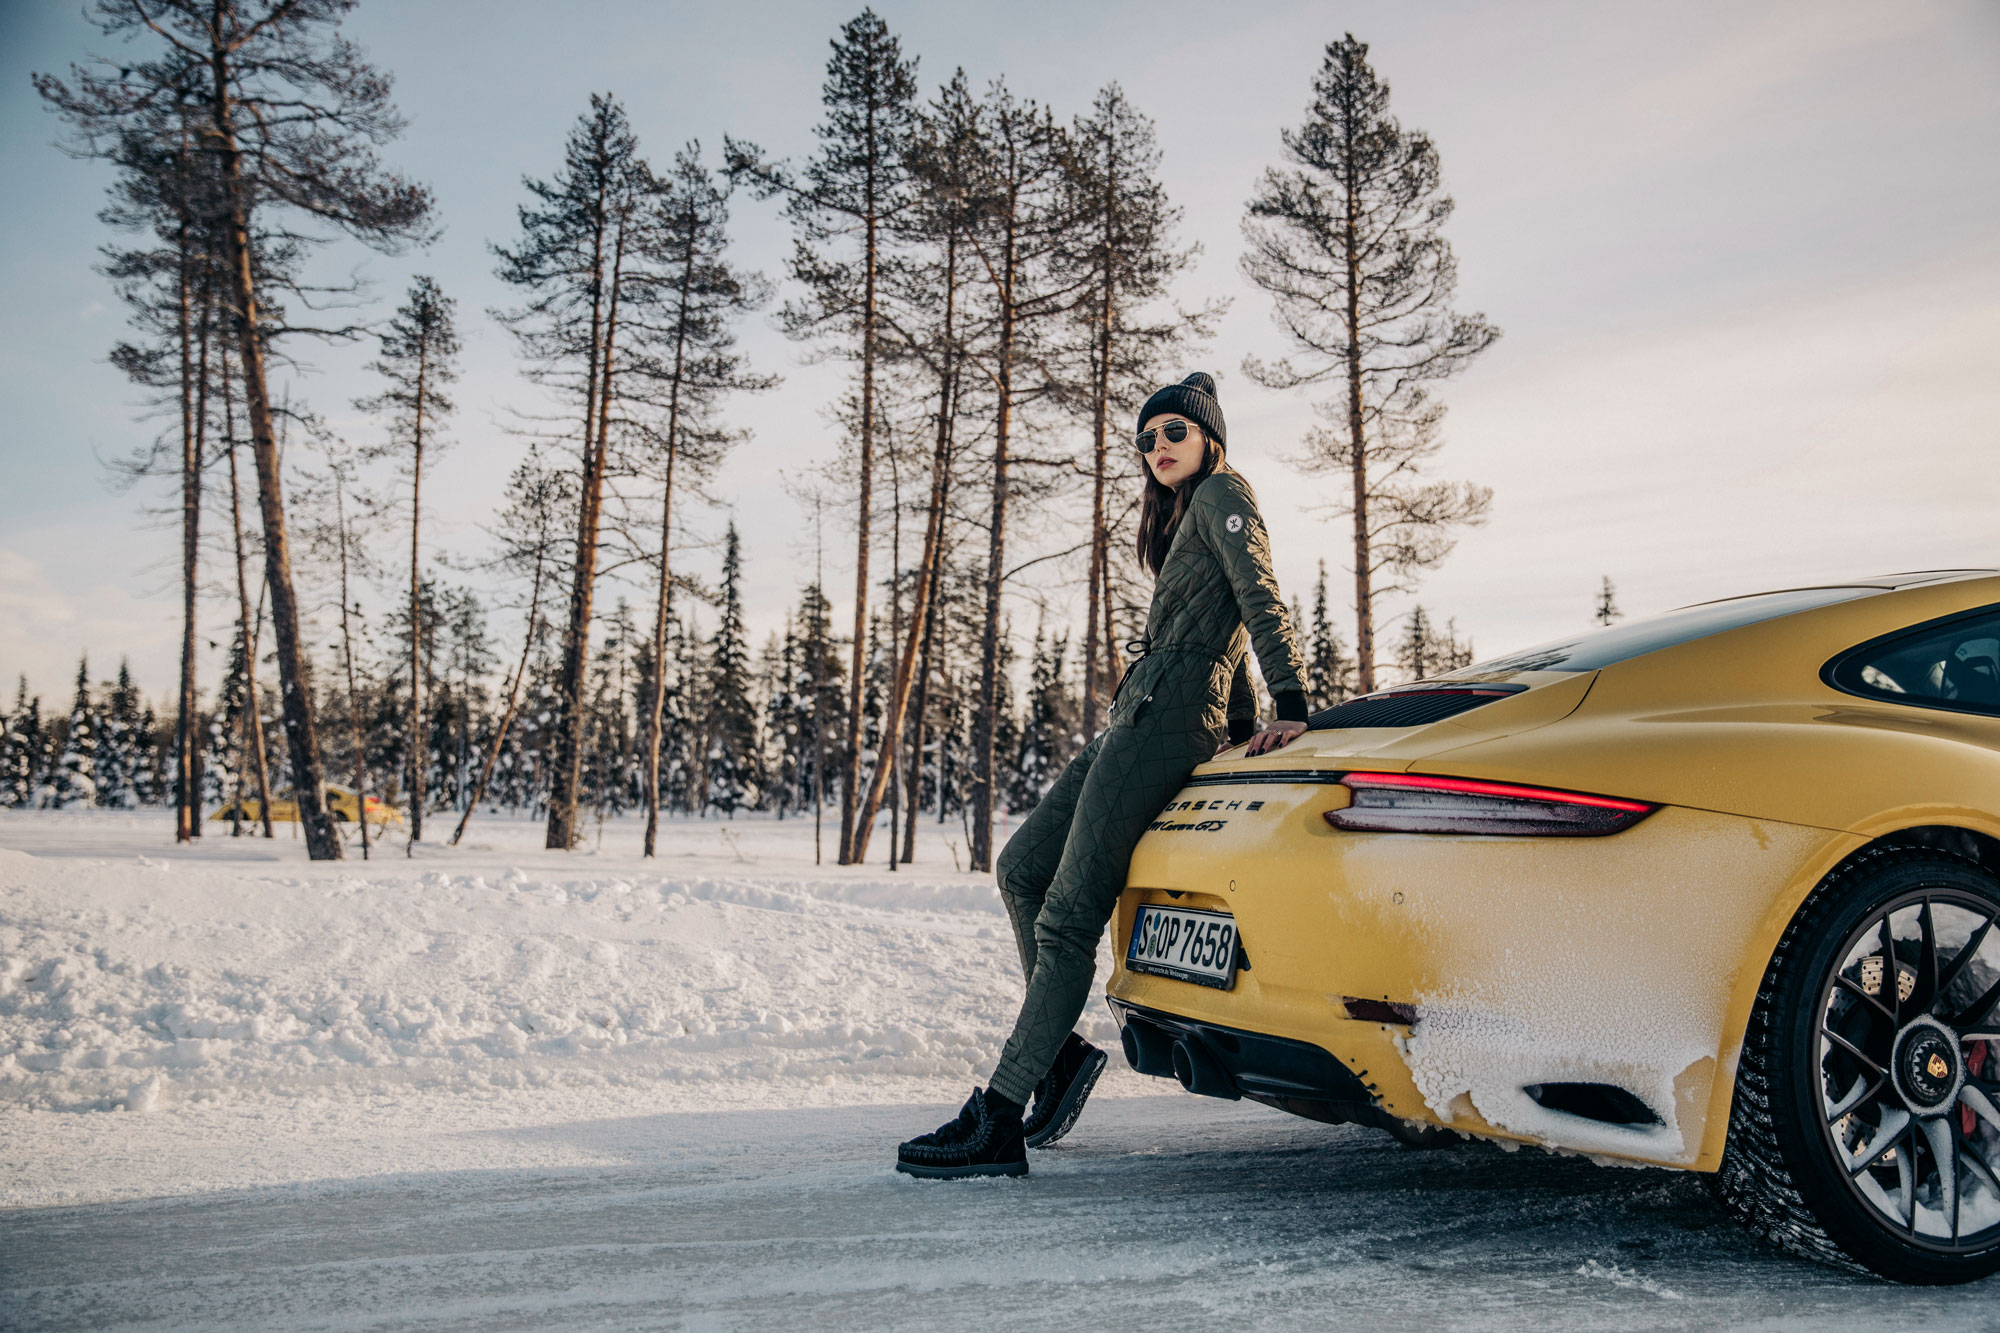 Porsche Ice Experience in Levi, North Finland | 911, Carrera, Panamera, 718 | Drifting | driving safety training